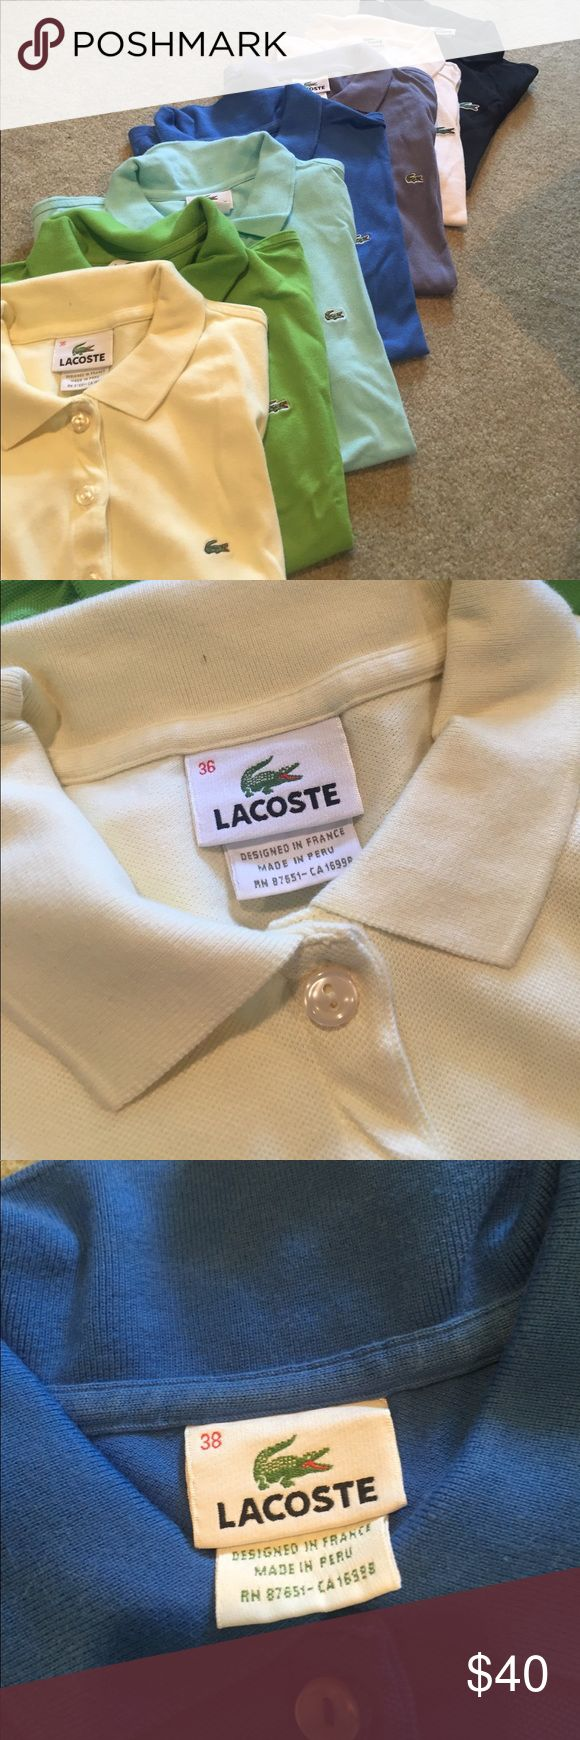 Lacoste polos 7 gently used Lacoste polos for sale, ranging from sizes 34-38. Will give bundle deals, price listed is for one shirt! Yellow 5 button size 36; green 2 button size 36; light blue 5 button size 36; blue 5 button size 38; grey 5 button size 34; white 3 button size 38; black 3 button size 36 Lacoste Tops Tees - Short Sleeve